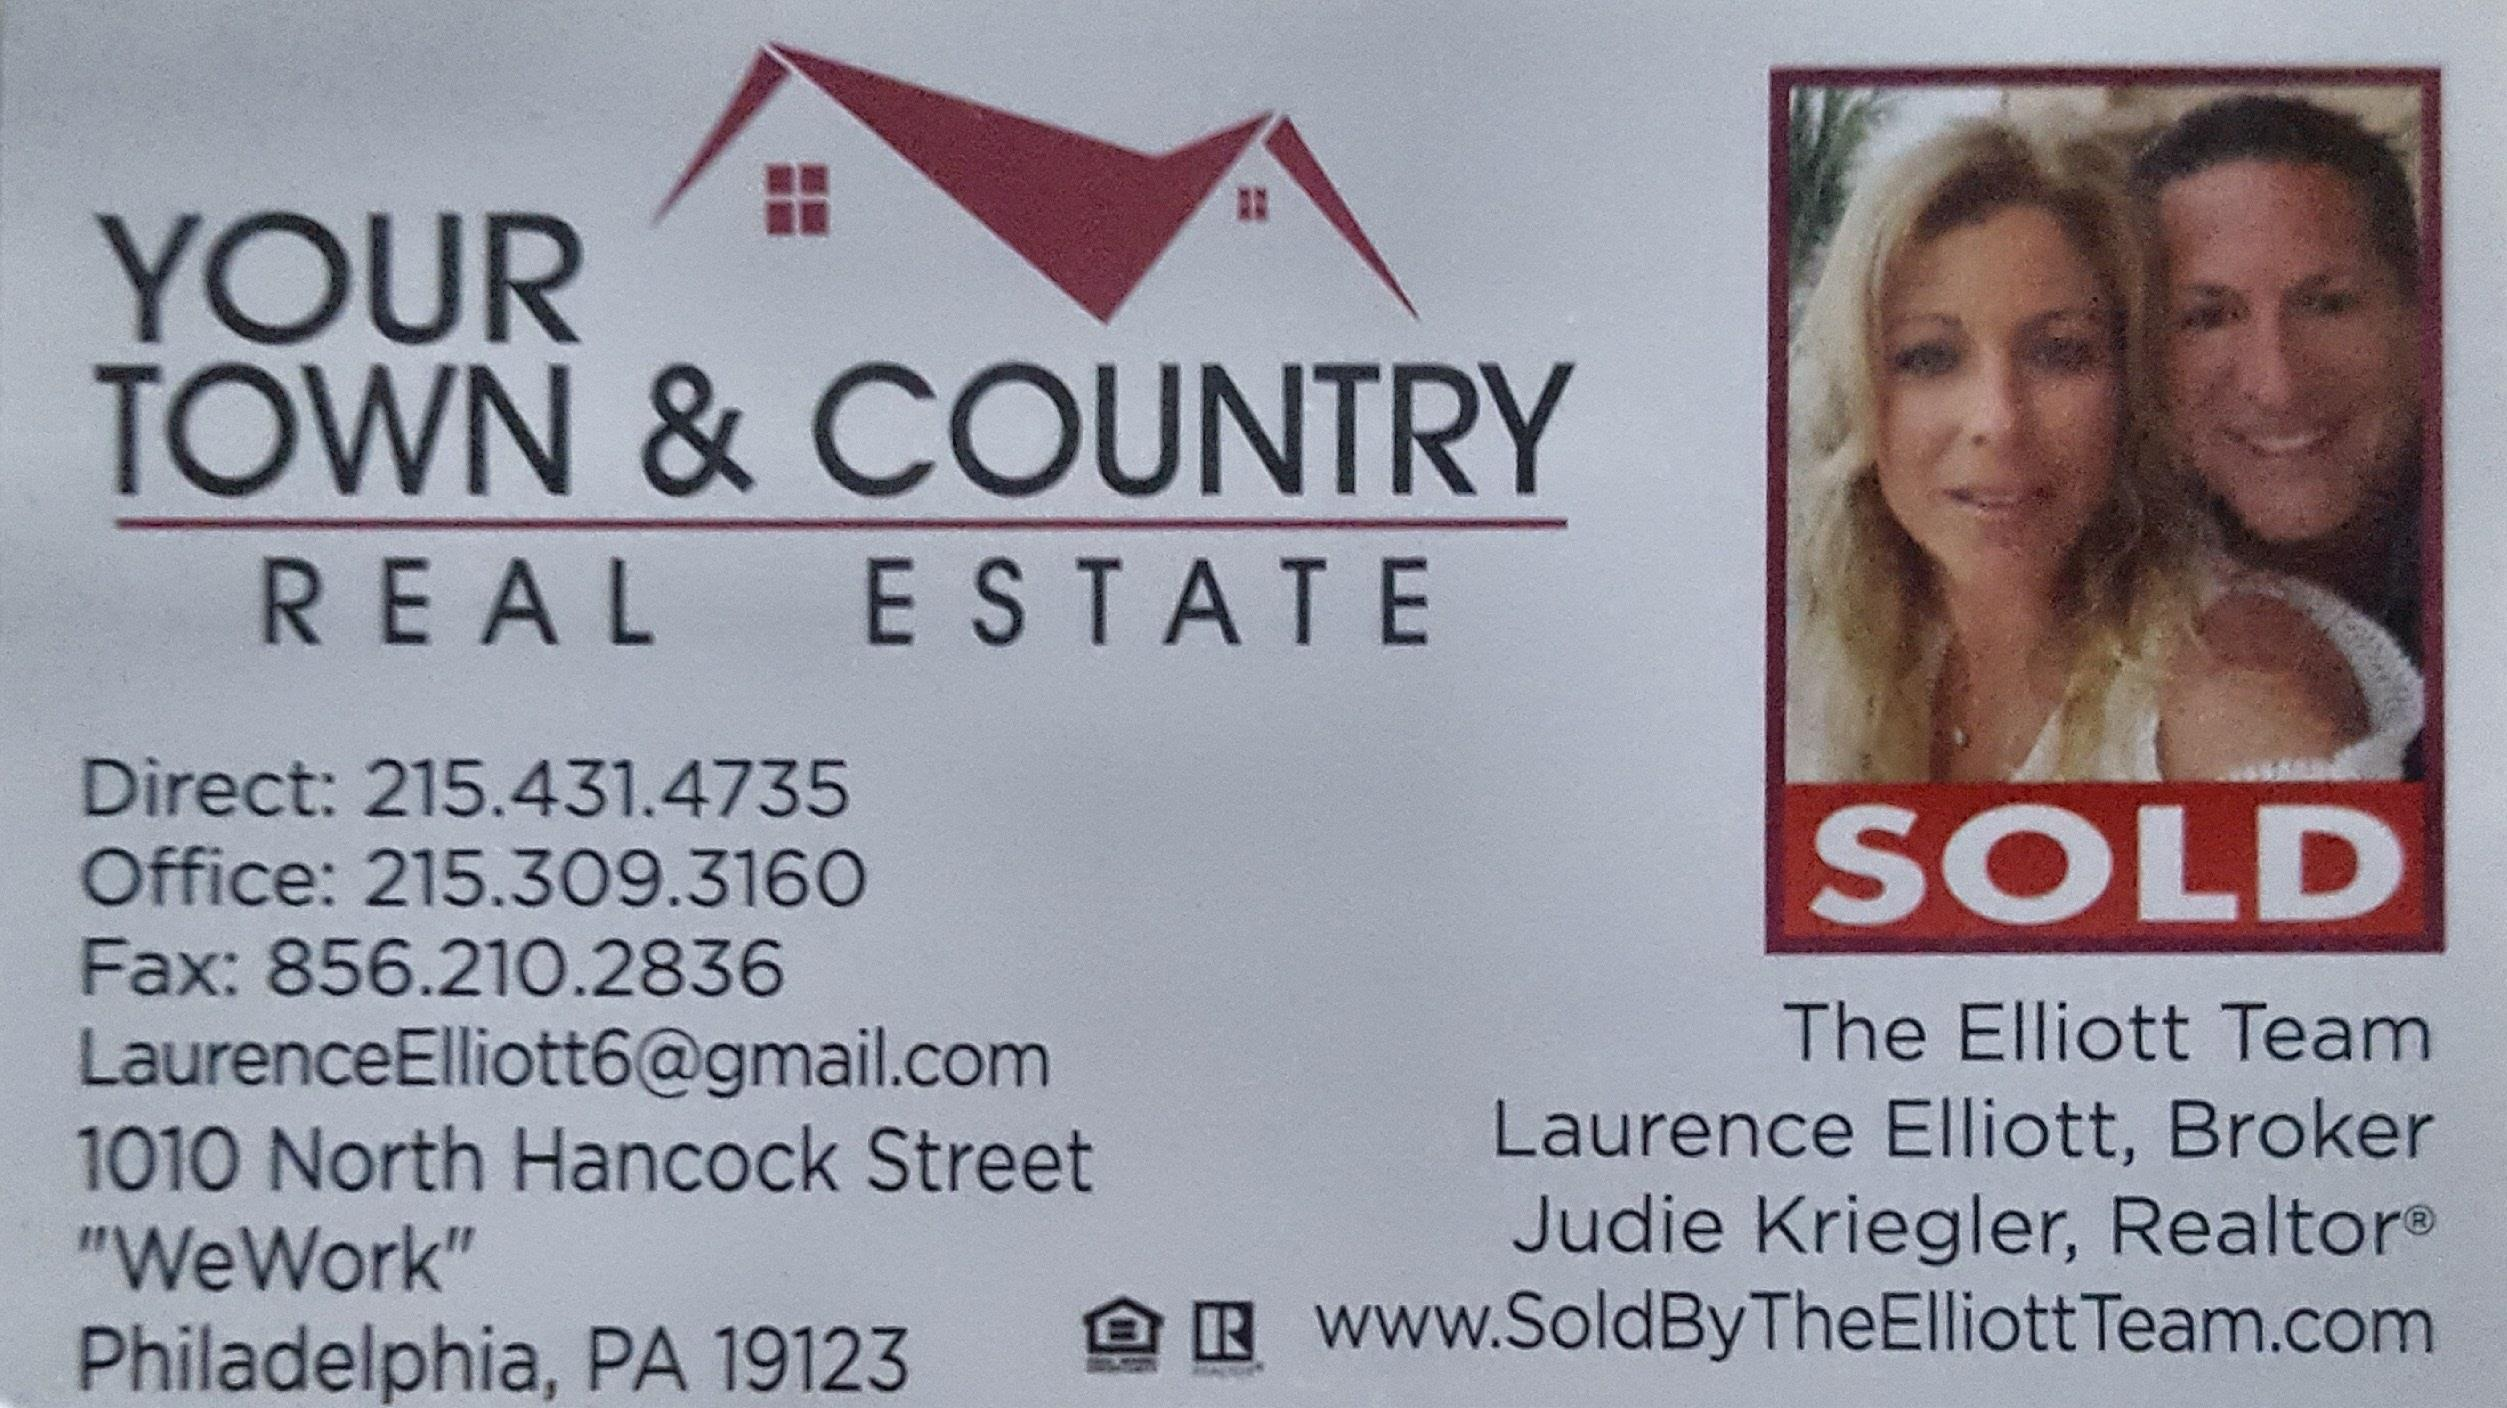 The Elliott Team Real Estate in Philadelphia, Bucks & Montgomery County. Bakers Bay Condos is our sepciality!